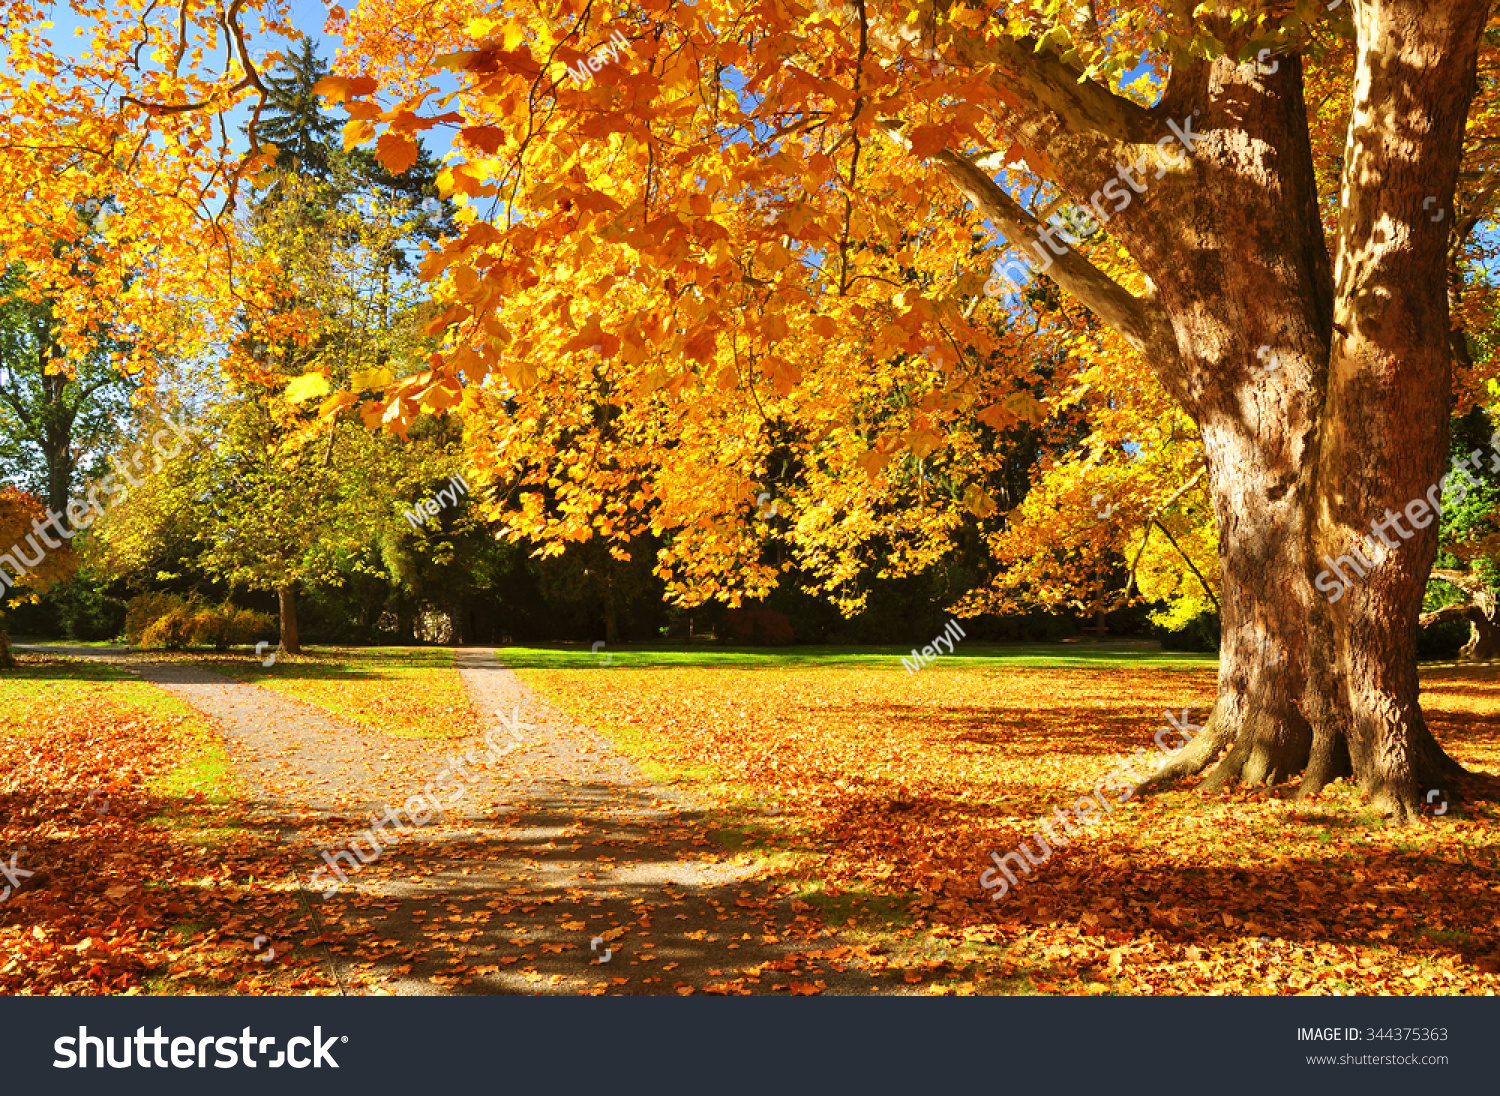 Fall Tree Images For Background